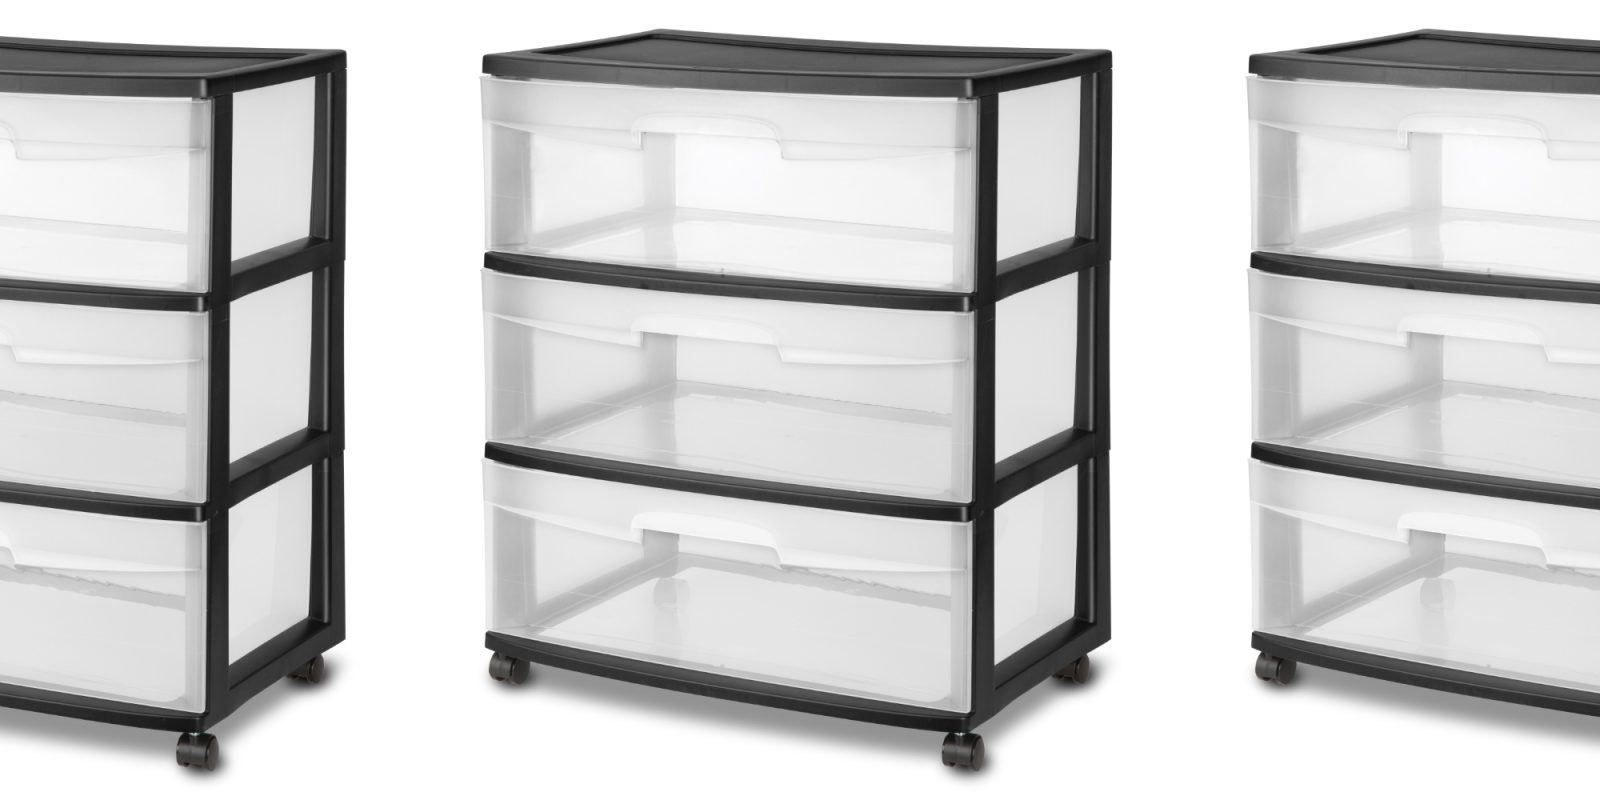 Save 25% on Sterilite's 3-Drawer Wide Organizer at a new all-time low of $15